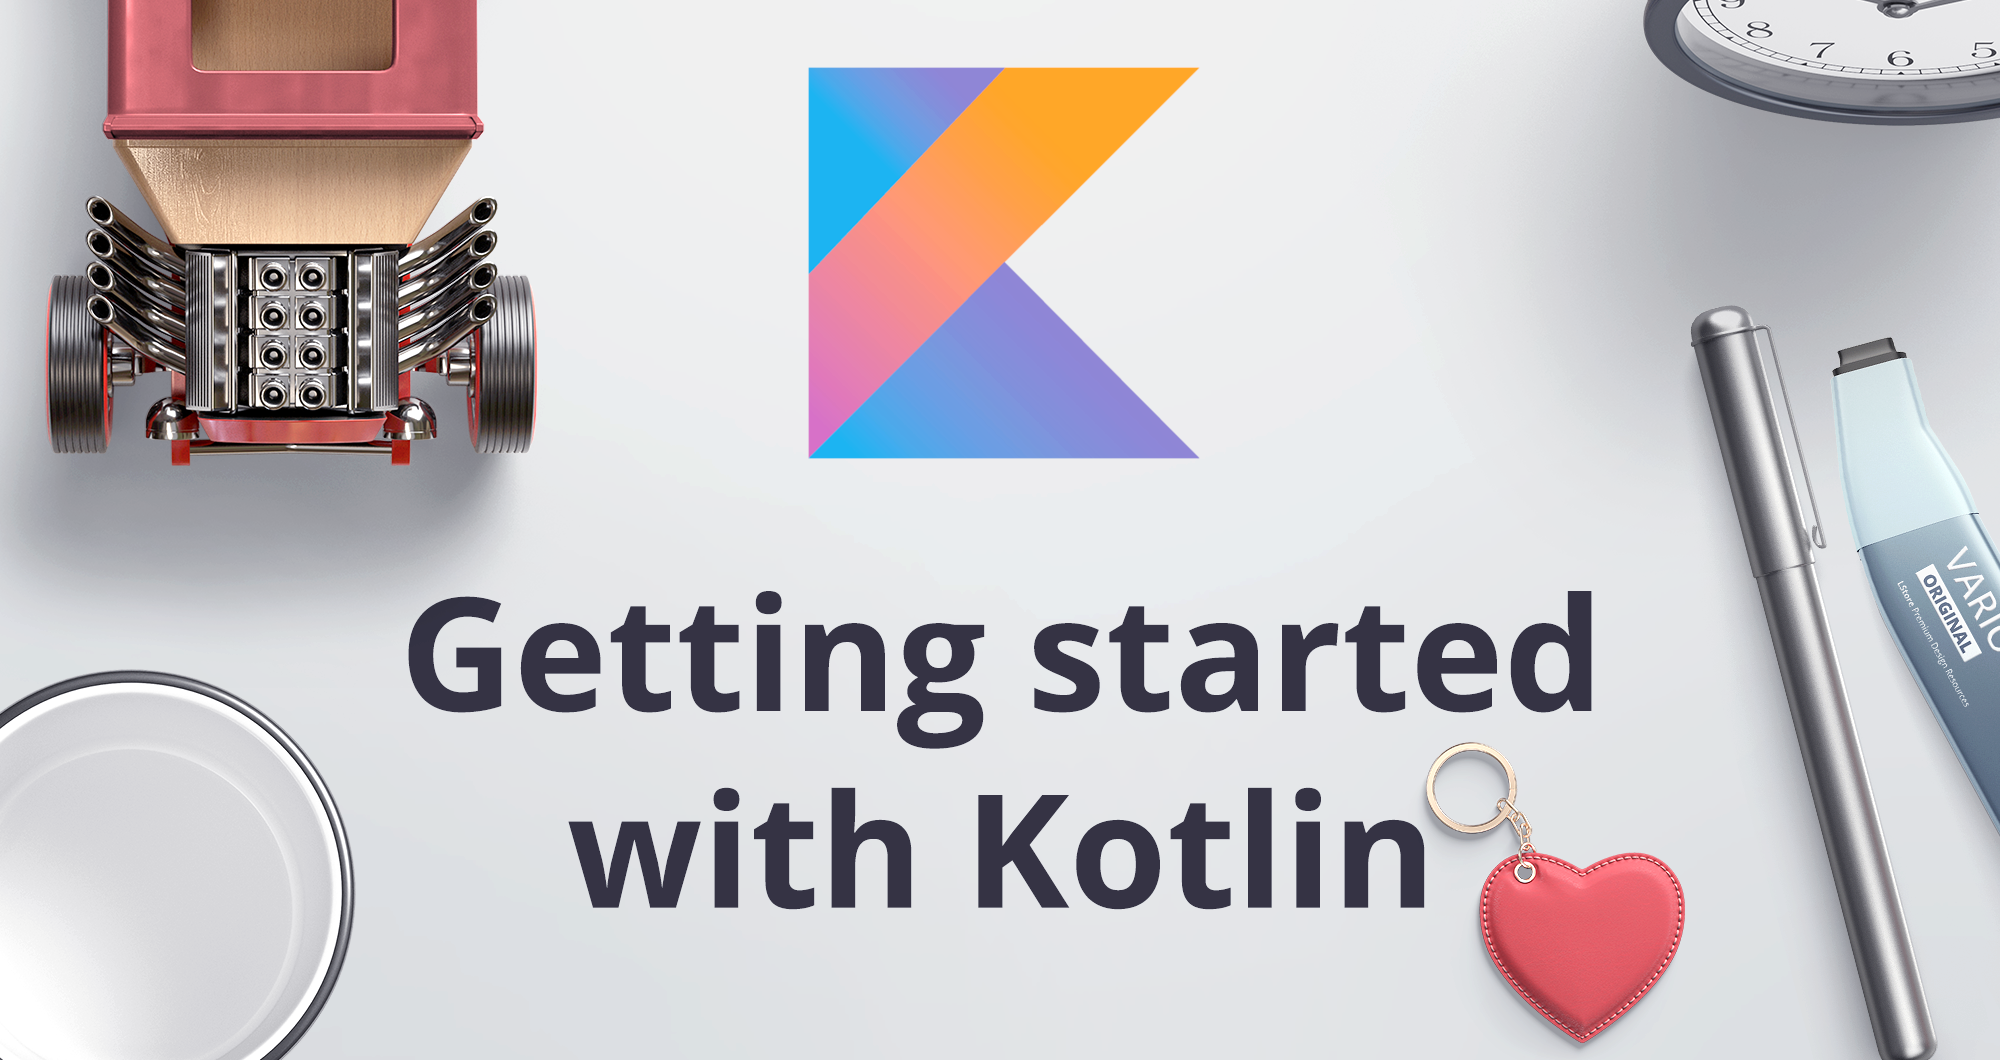 Getting started with Kotlin and Third-party libraries Glide